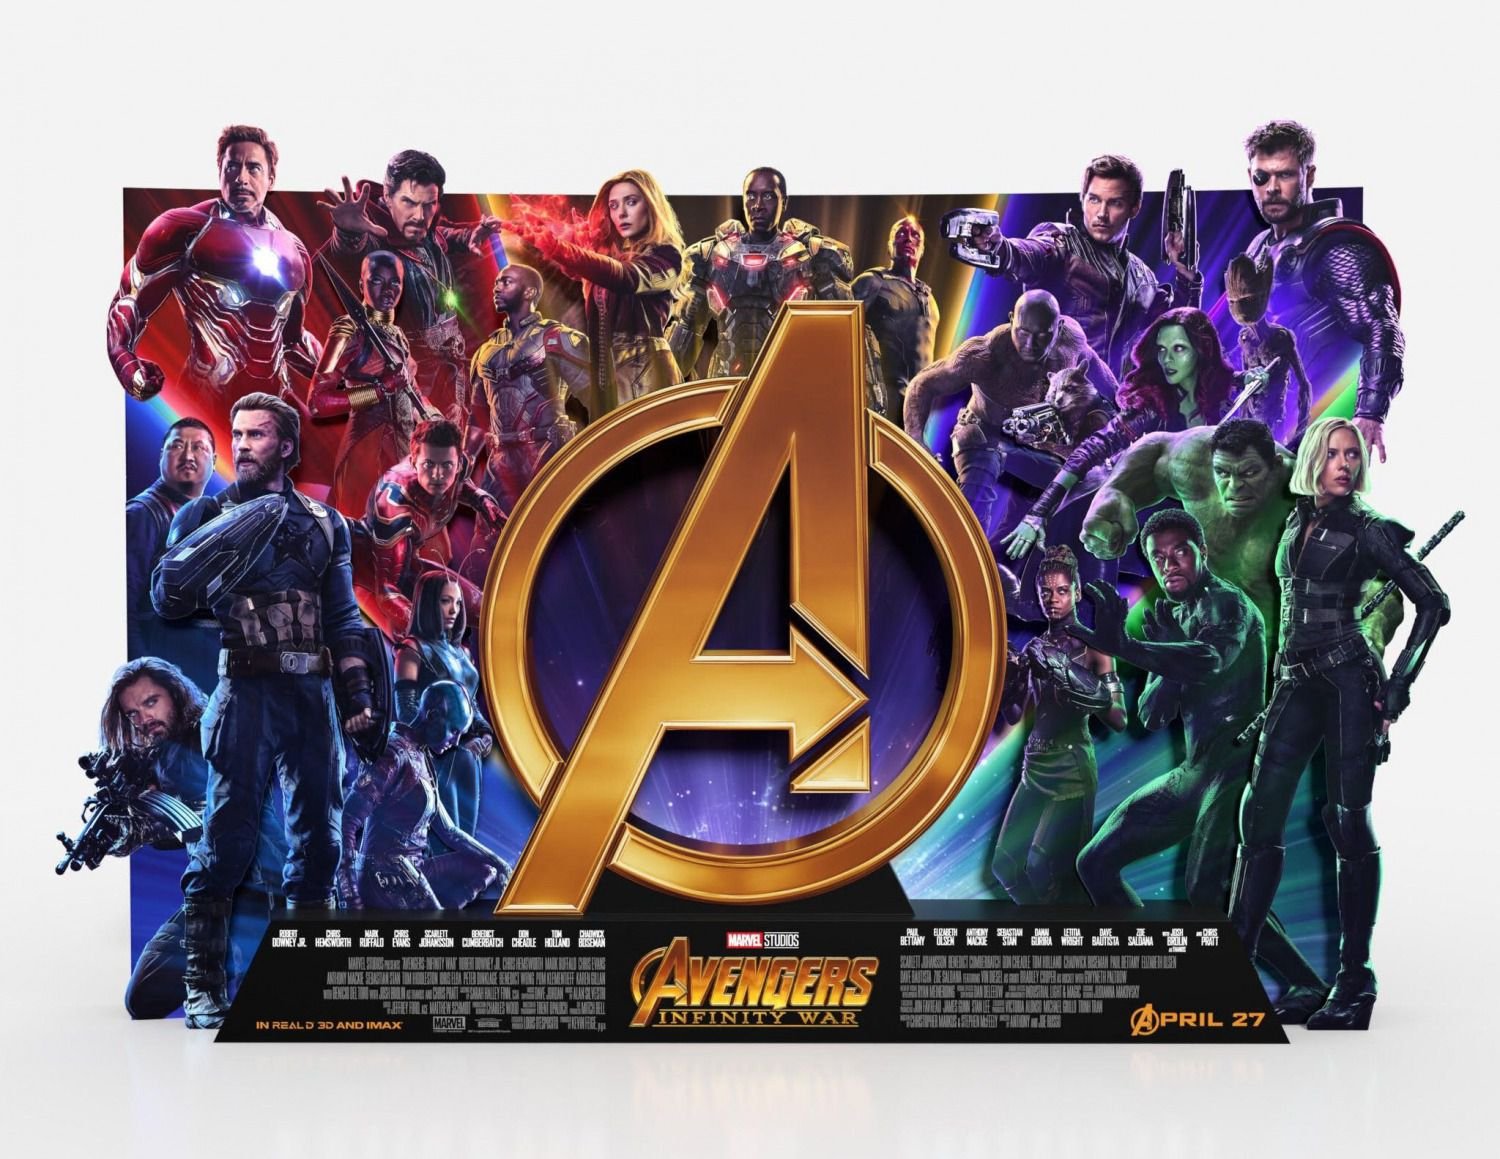 Avengers Infinity War wallpaper